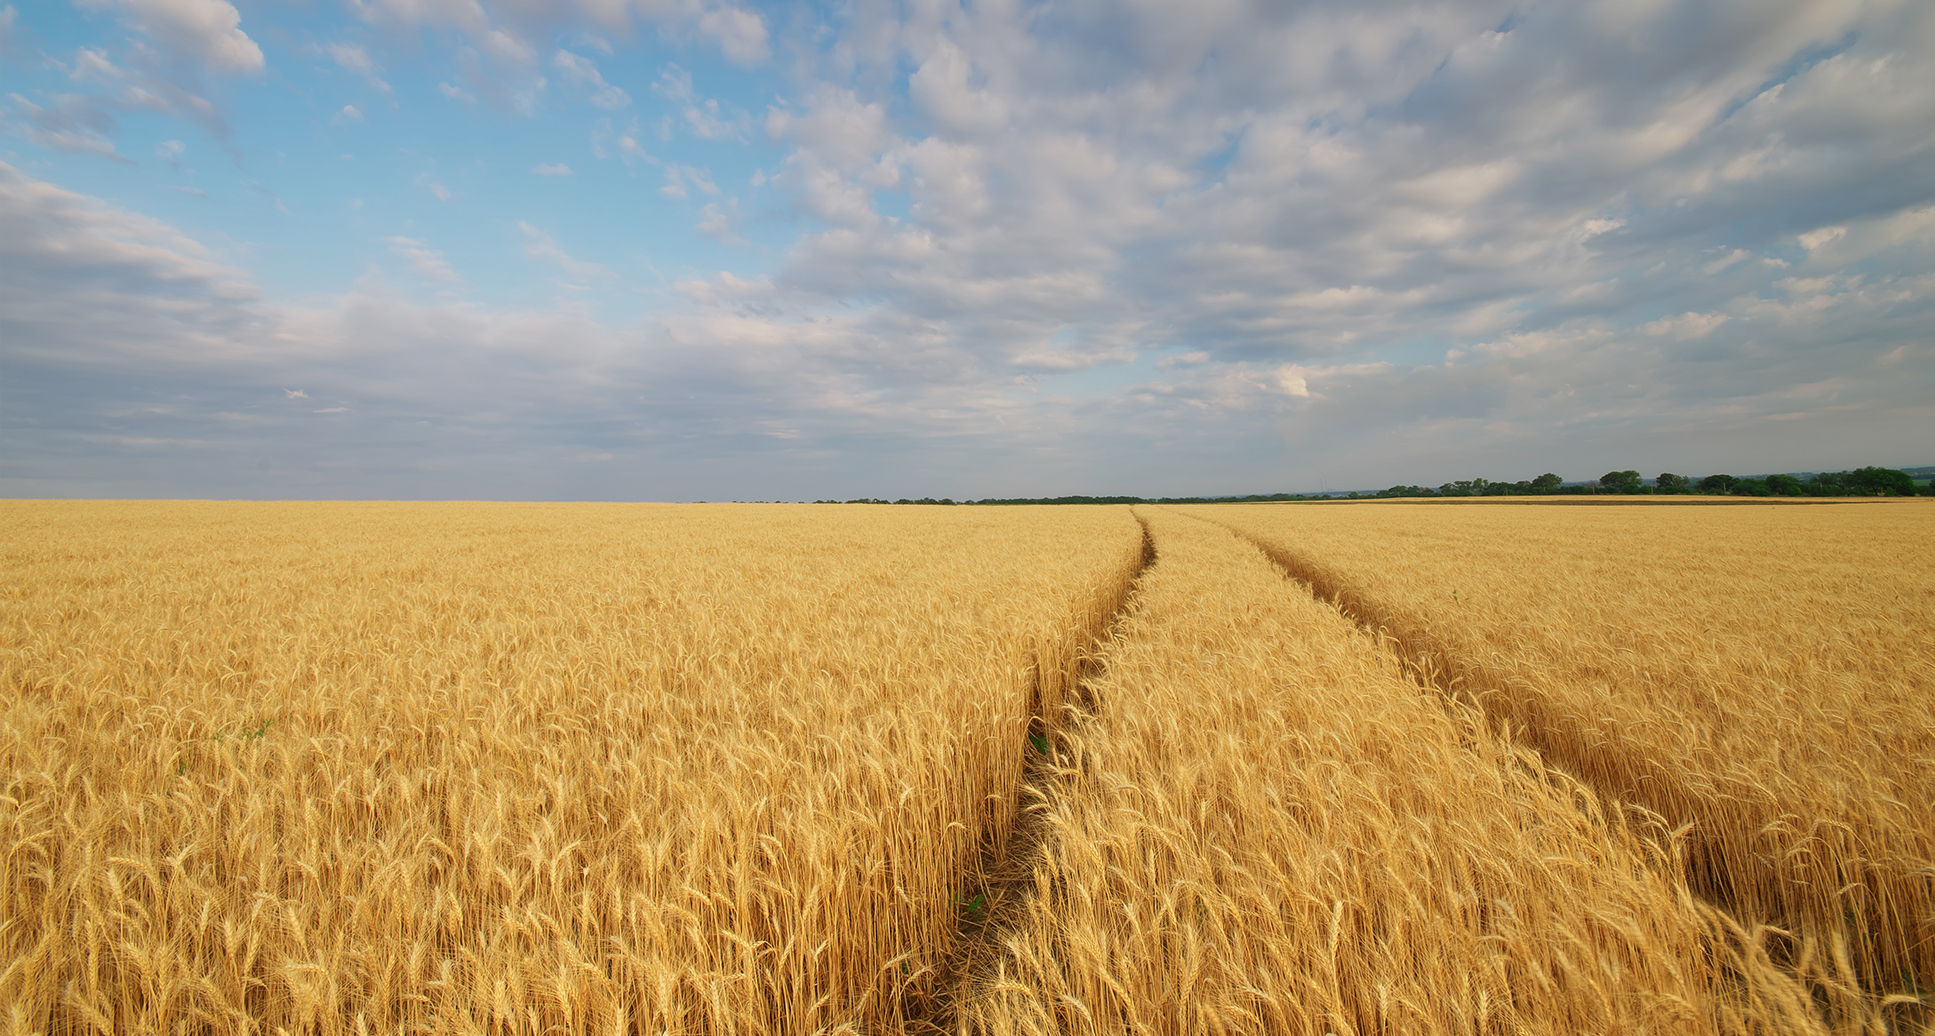 Wheat Varieties - What To Drill in 2022 - Ceres Rural